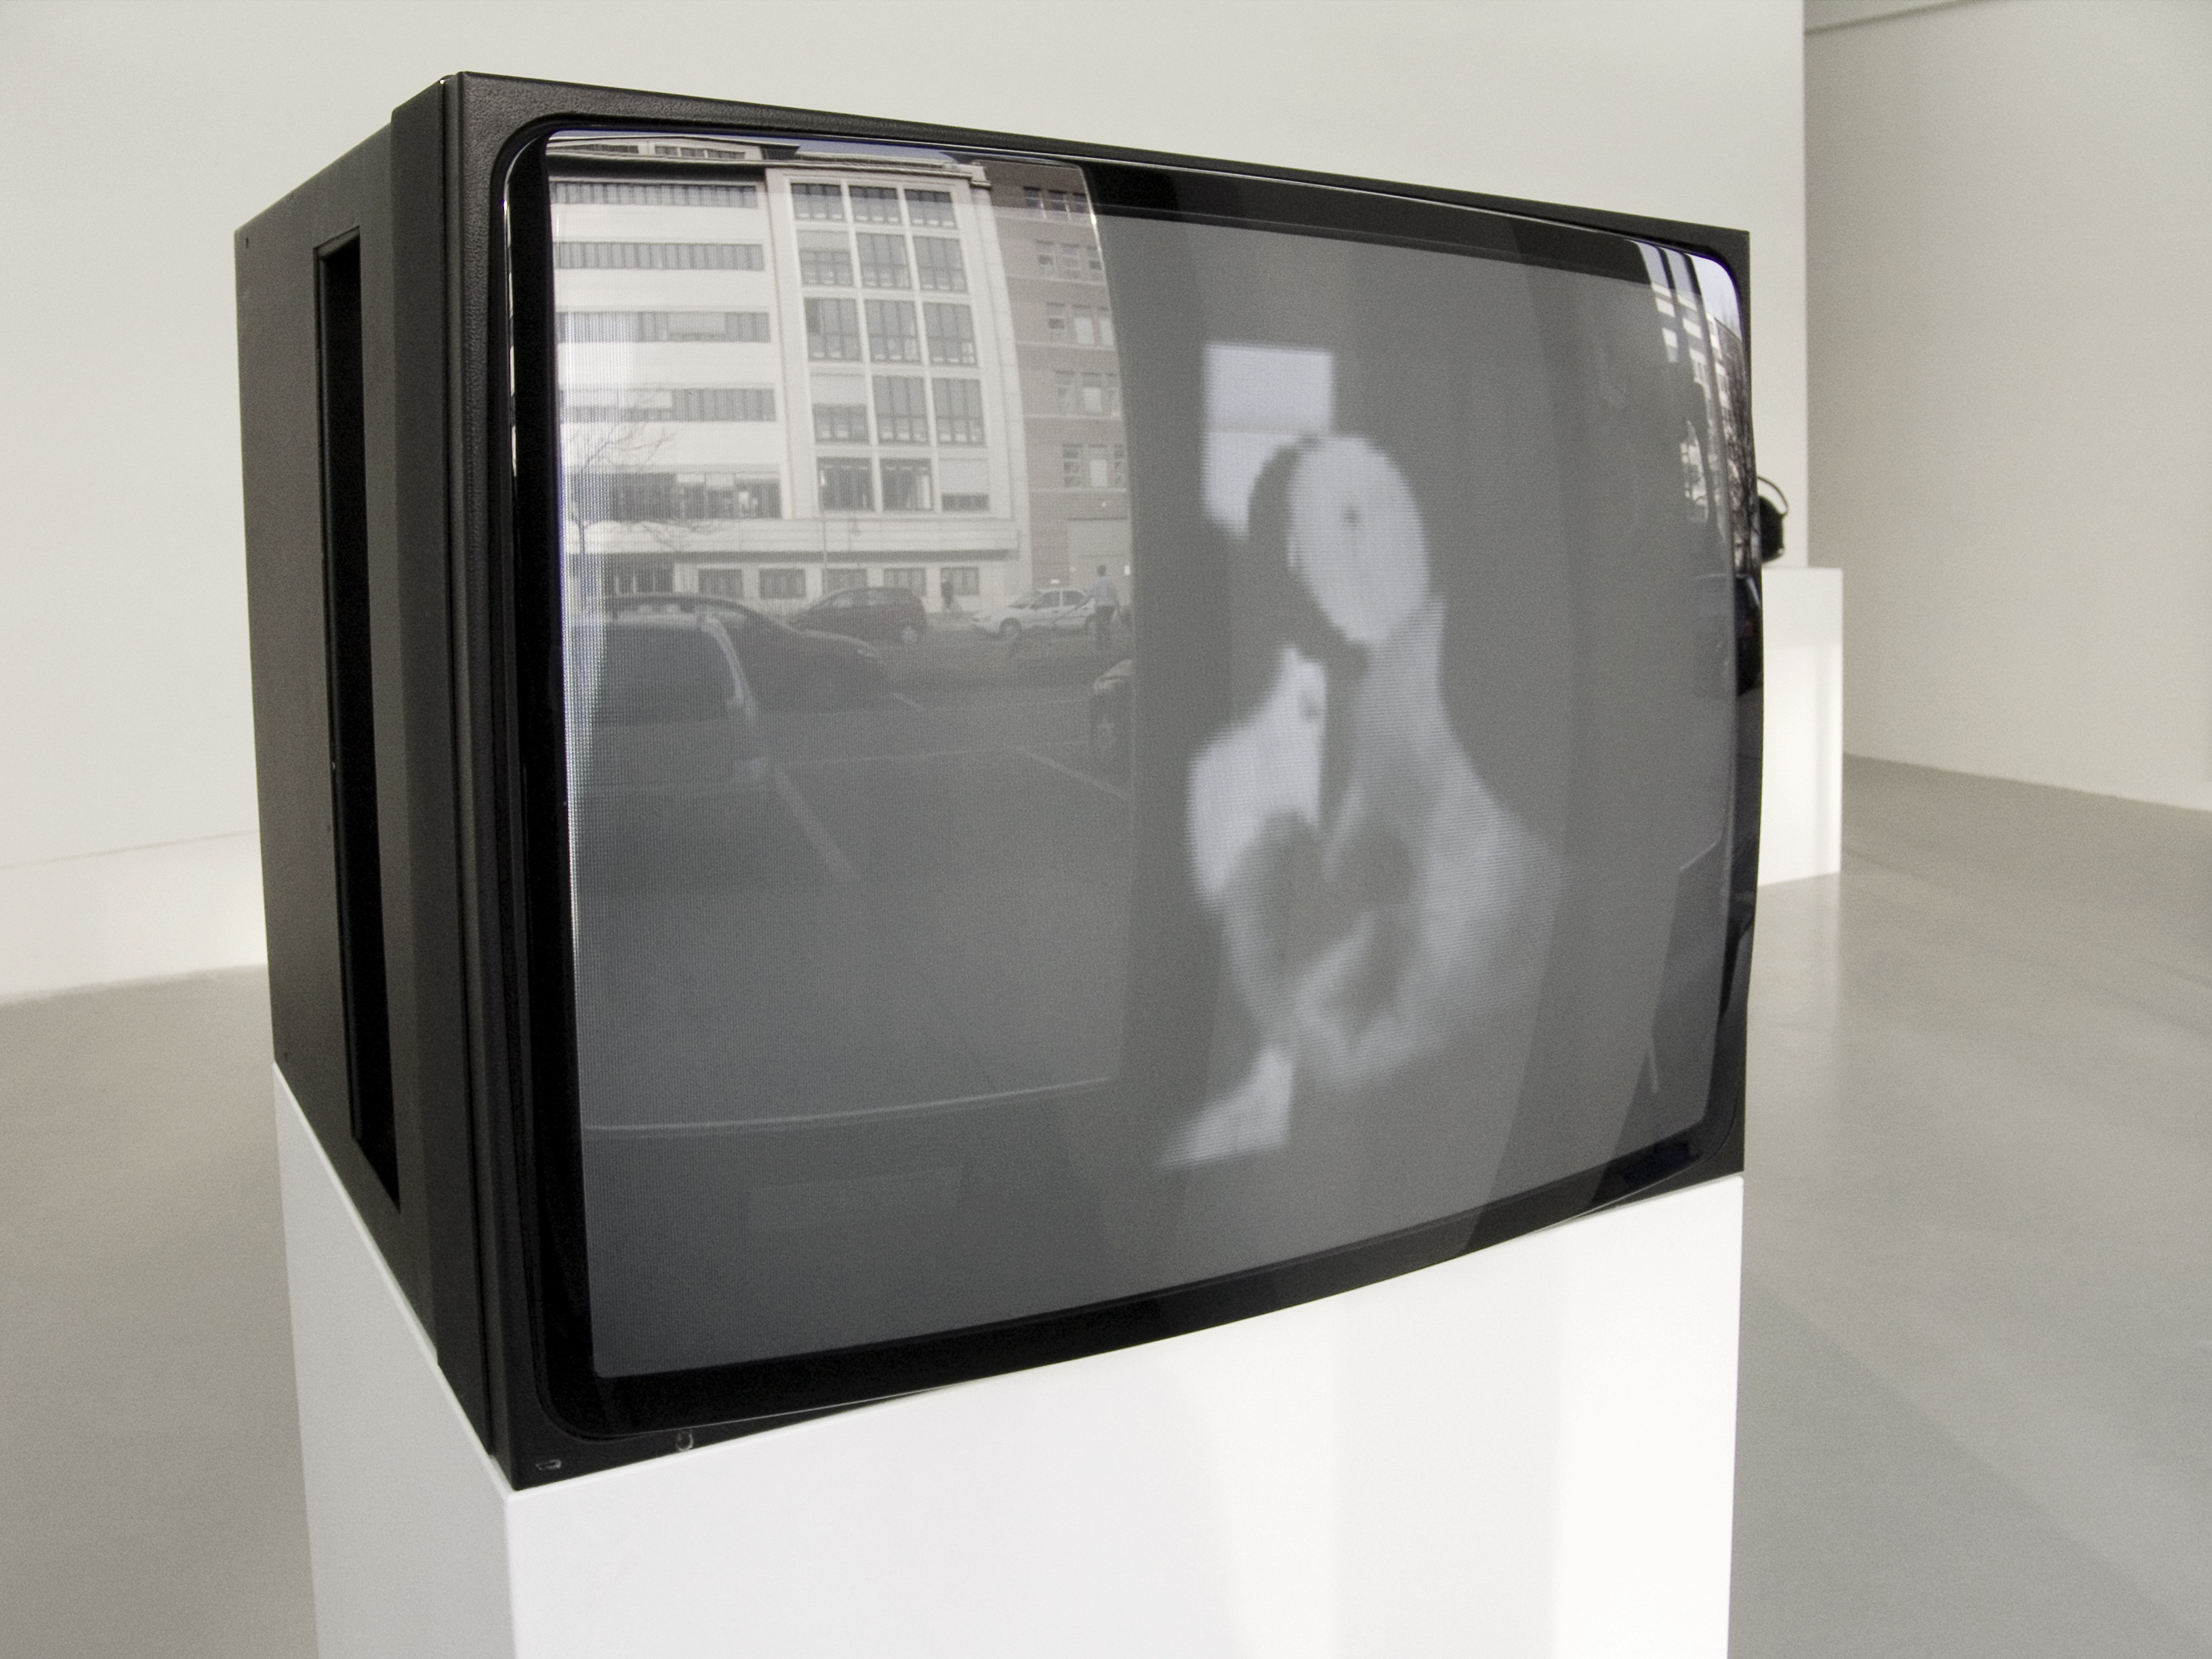 8 Minuten, a video artwork by Erik Andersen running on a old TV Monitor